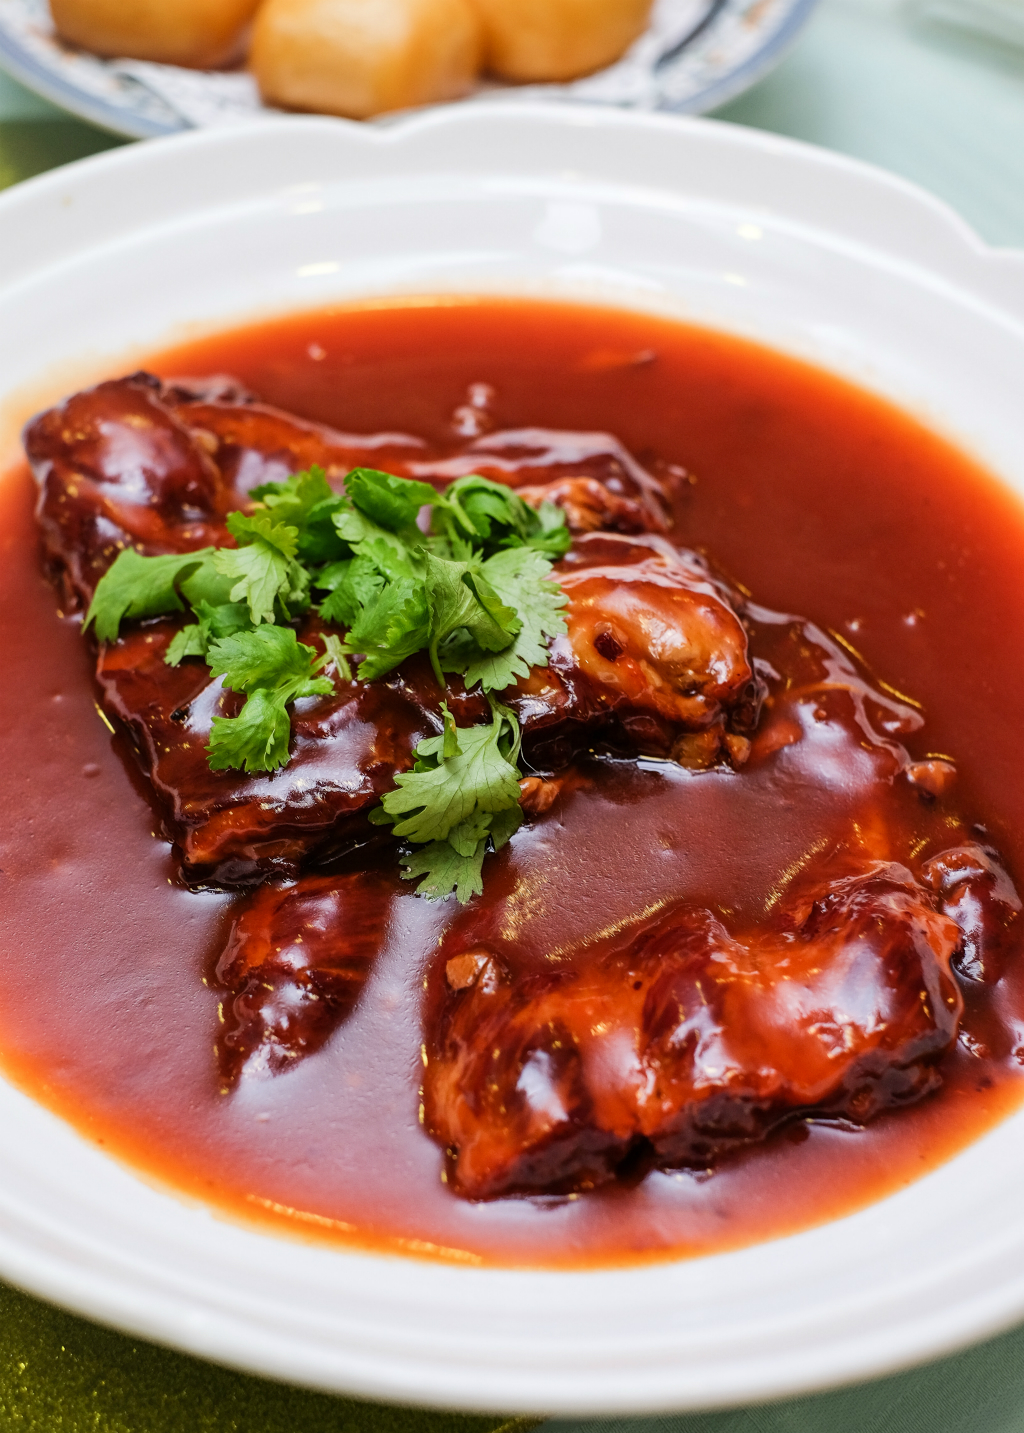 Li Jiang Restaurant: Braised Pork Ribs